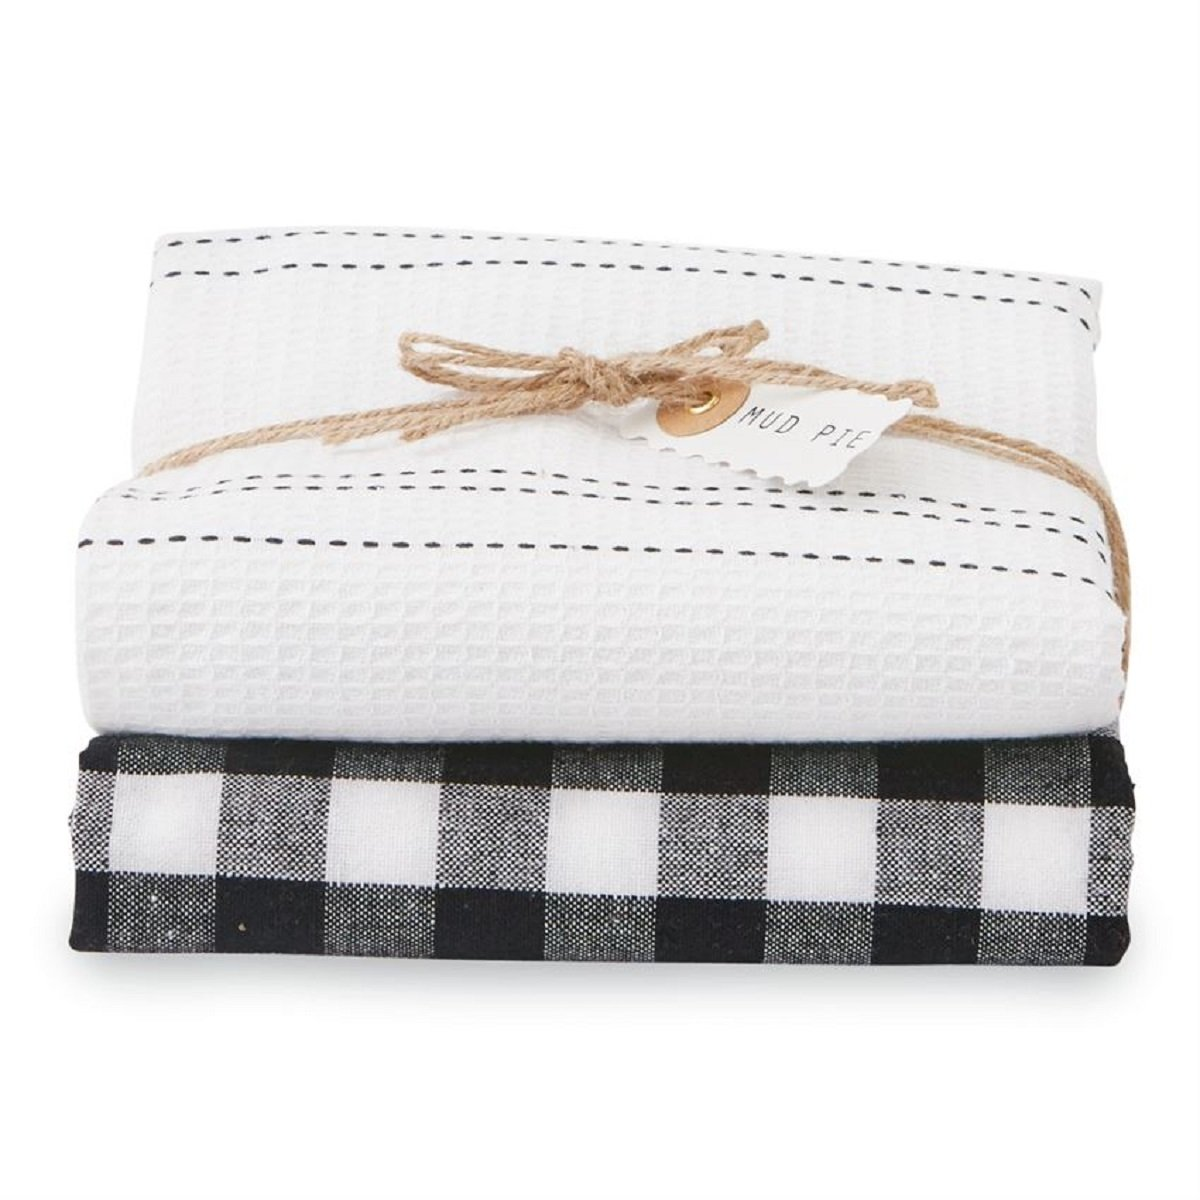 Mud Pie Linen Dish Towel Set (Black)